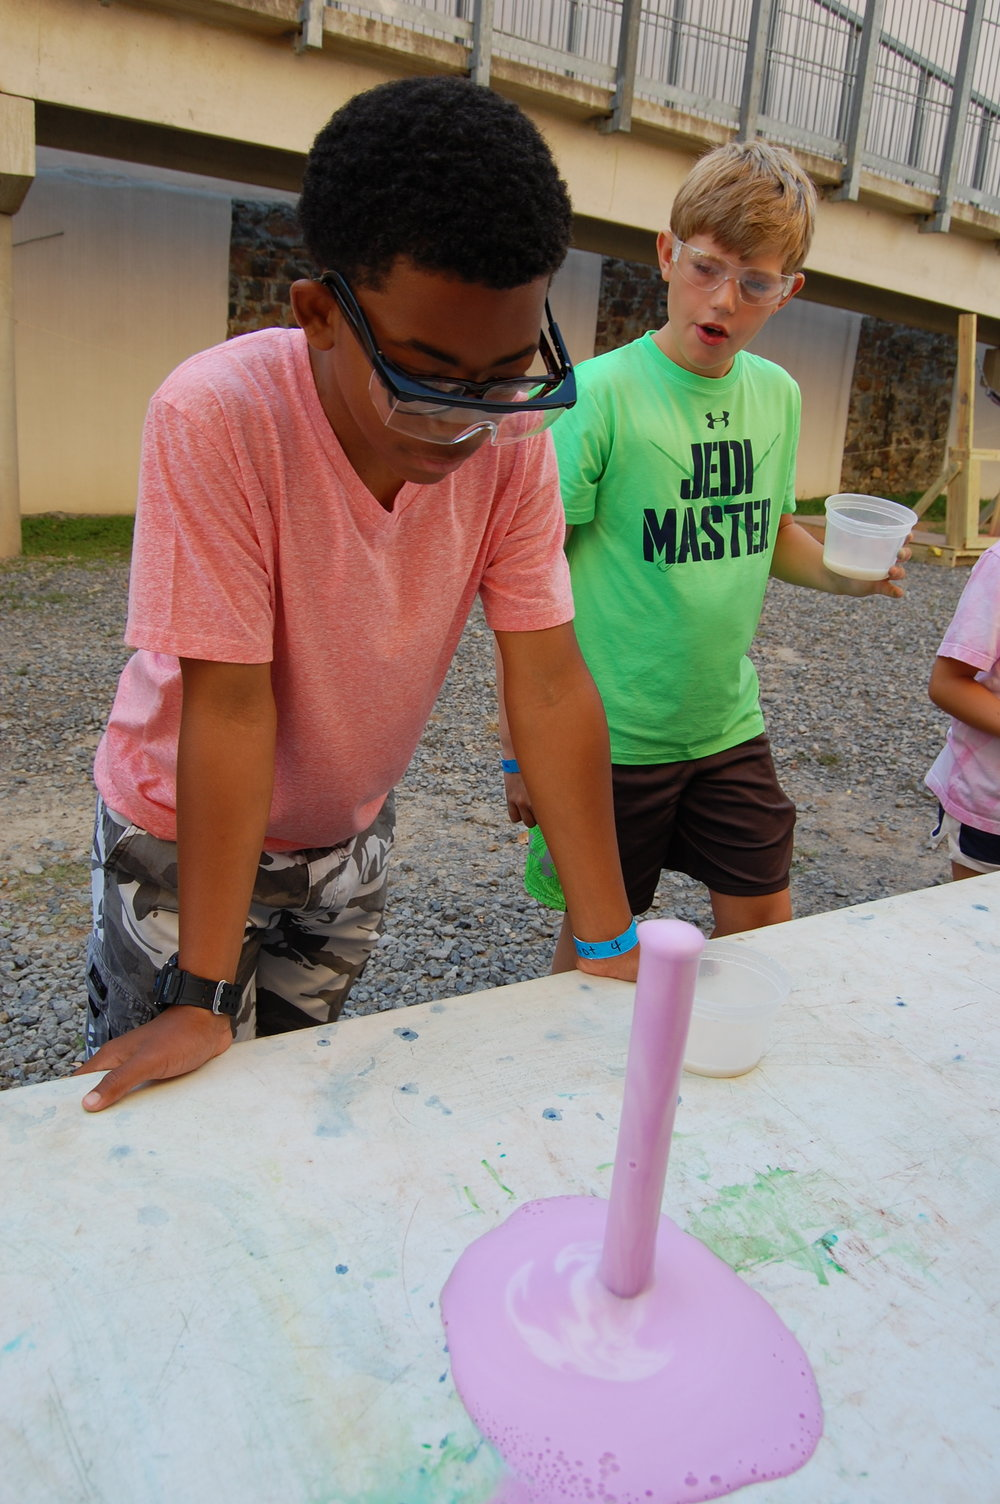 Kids love to tinker, learn, discover and get messy at Museum of Discovery's special summer programming.